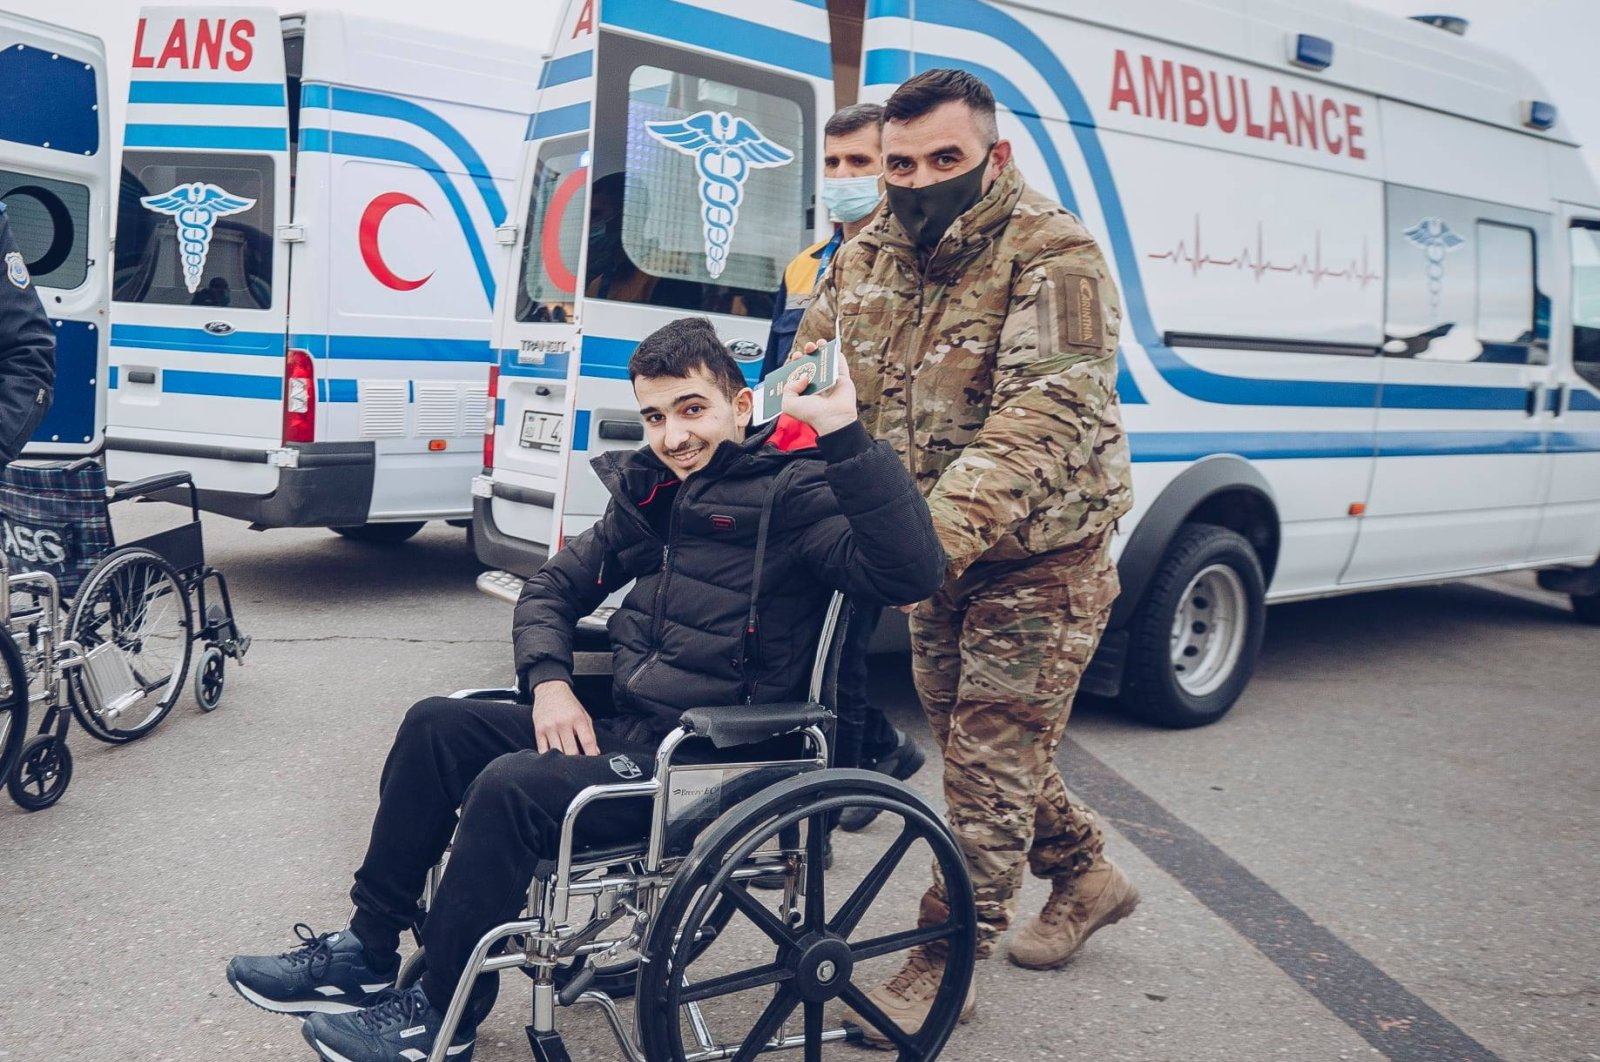 A wounded Azerbaijani soldier waves at cameras after coming to Turkey for treatment, March 29, 2021. (AA)